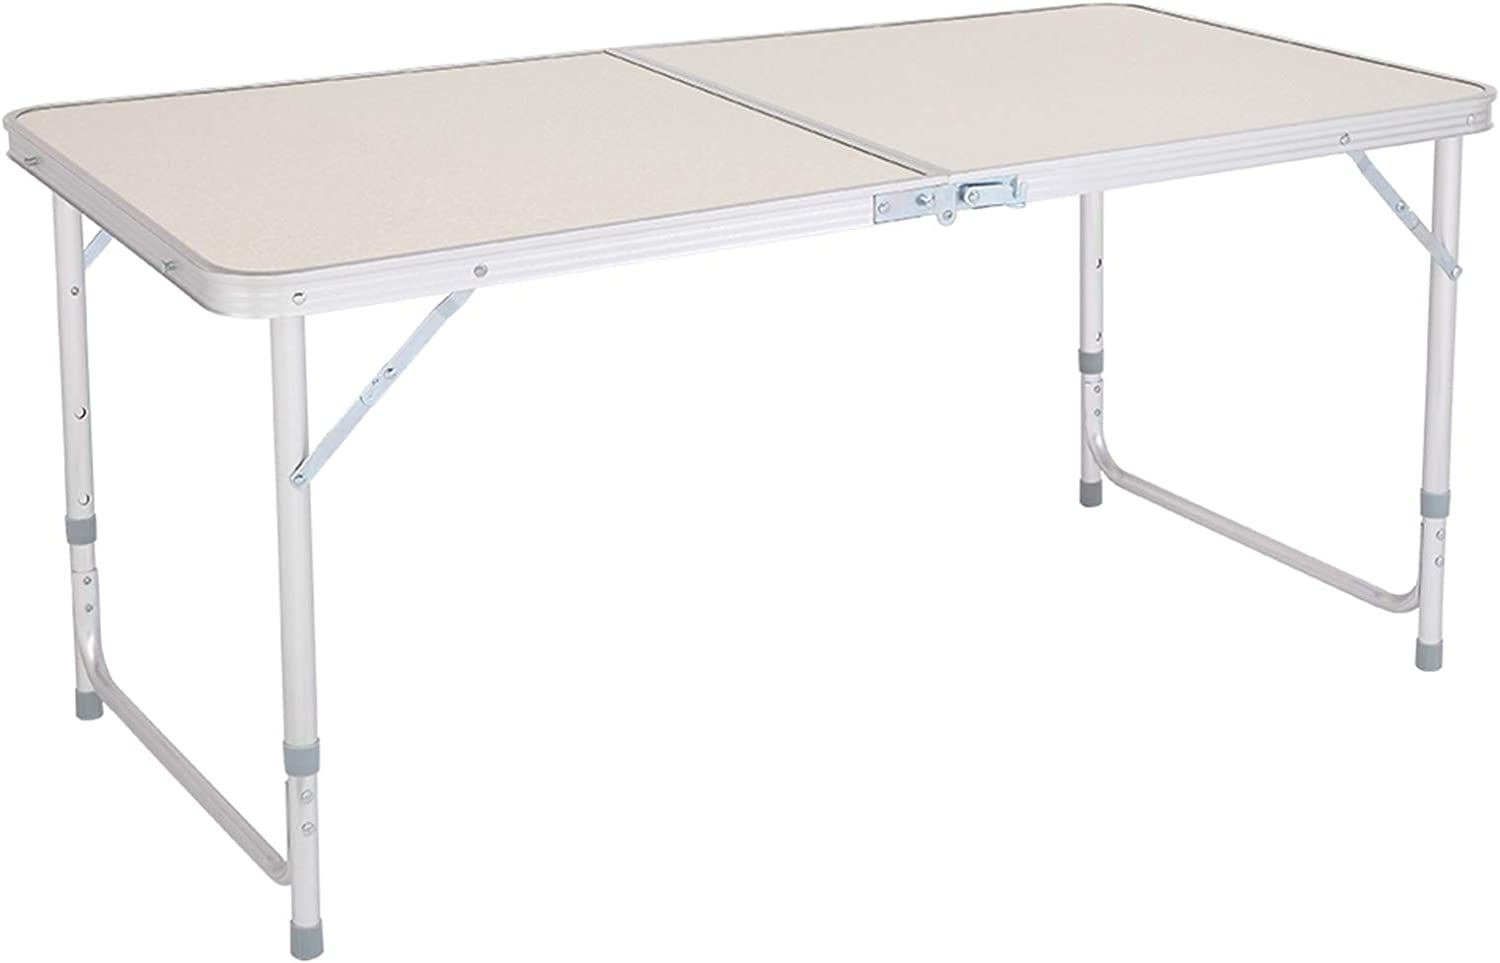 Savins 120 x 60 Max 74% OFF 70 At the price Picnic 4Ft Folding Adjustable Height Table